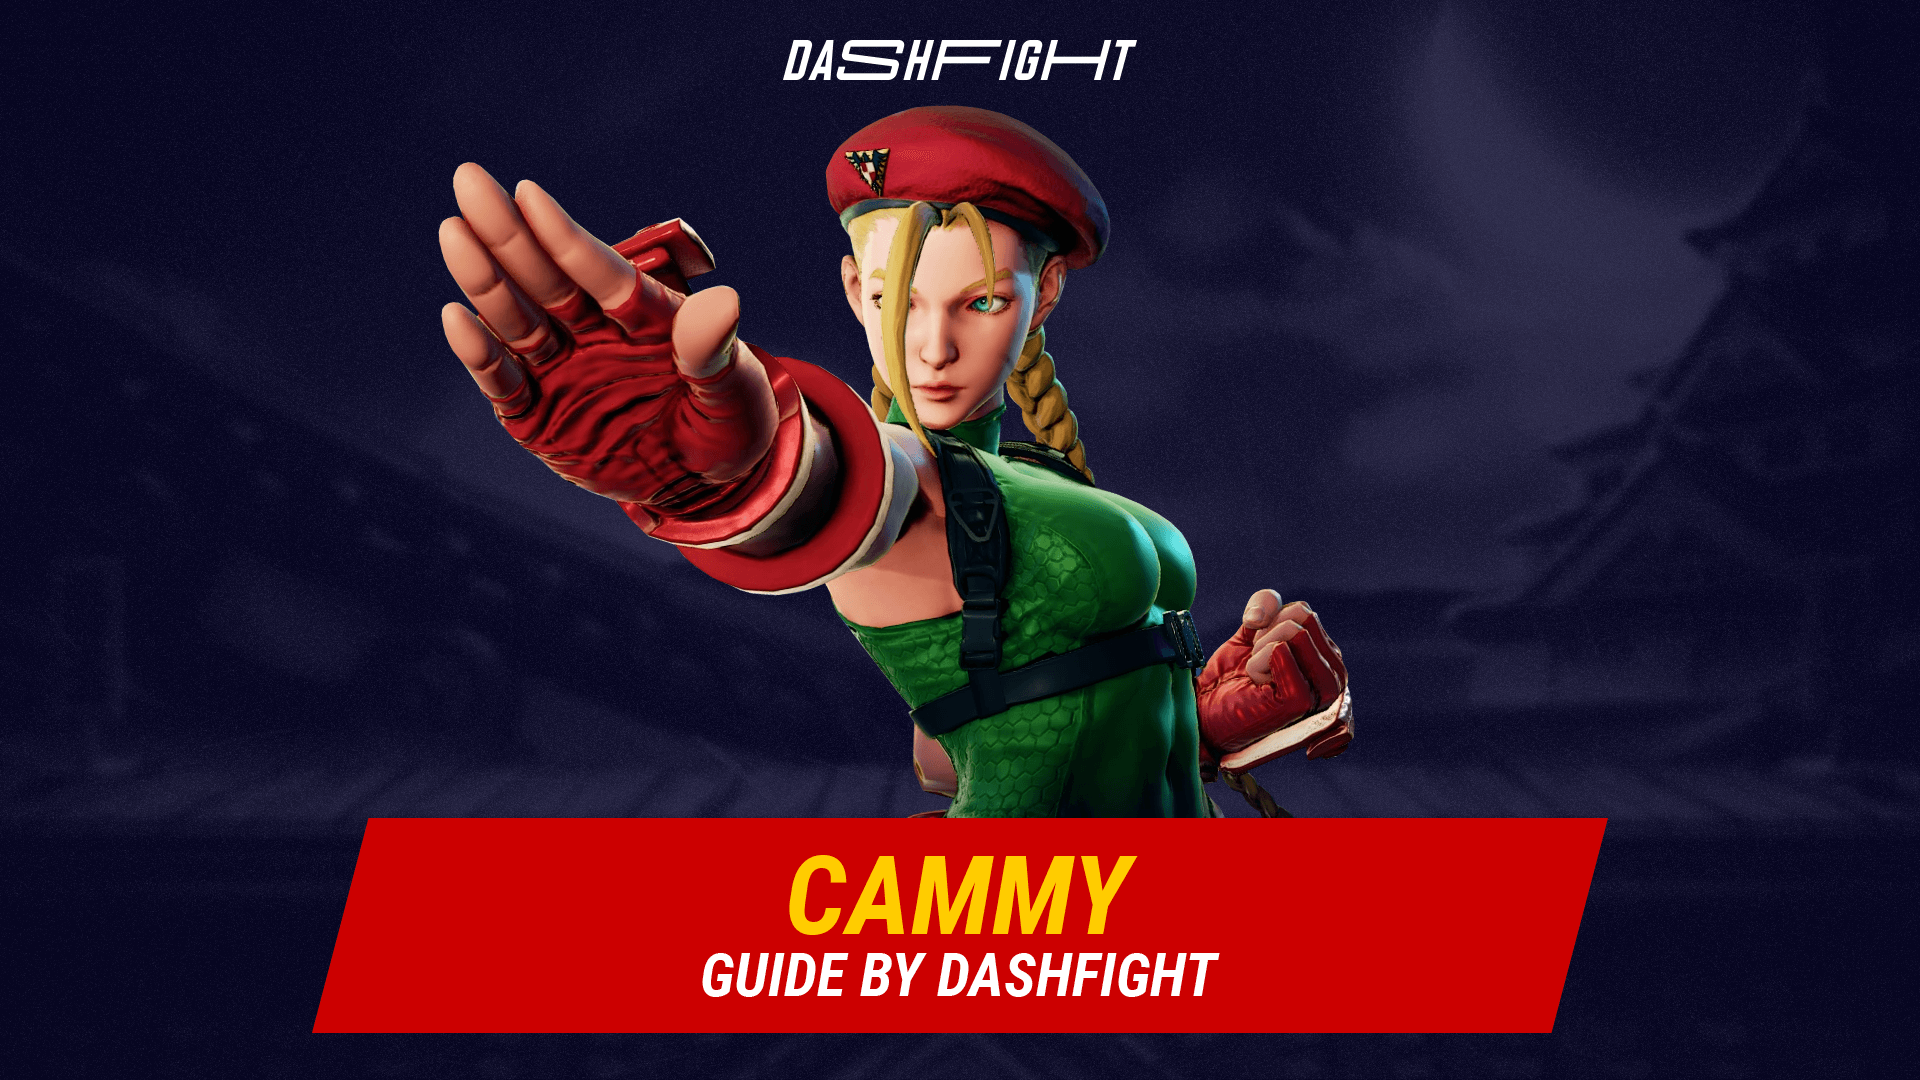 Street Fighter 5: Cammy Guide - Combos and Move List